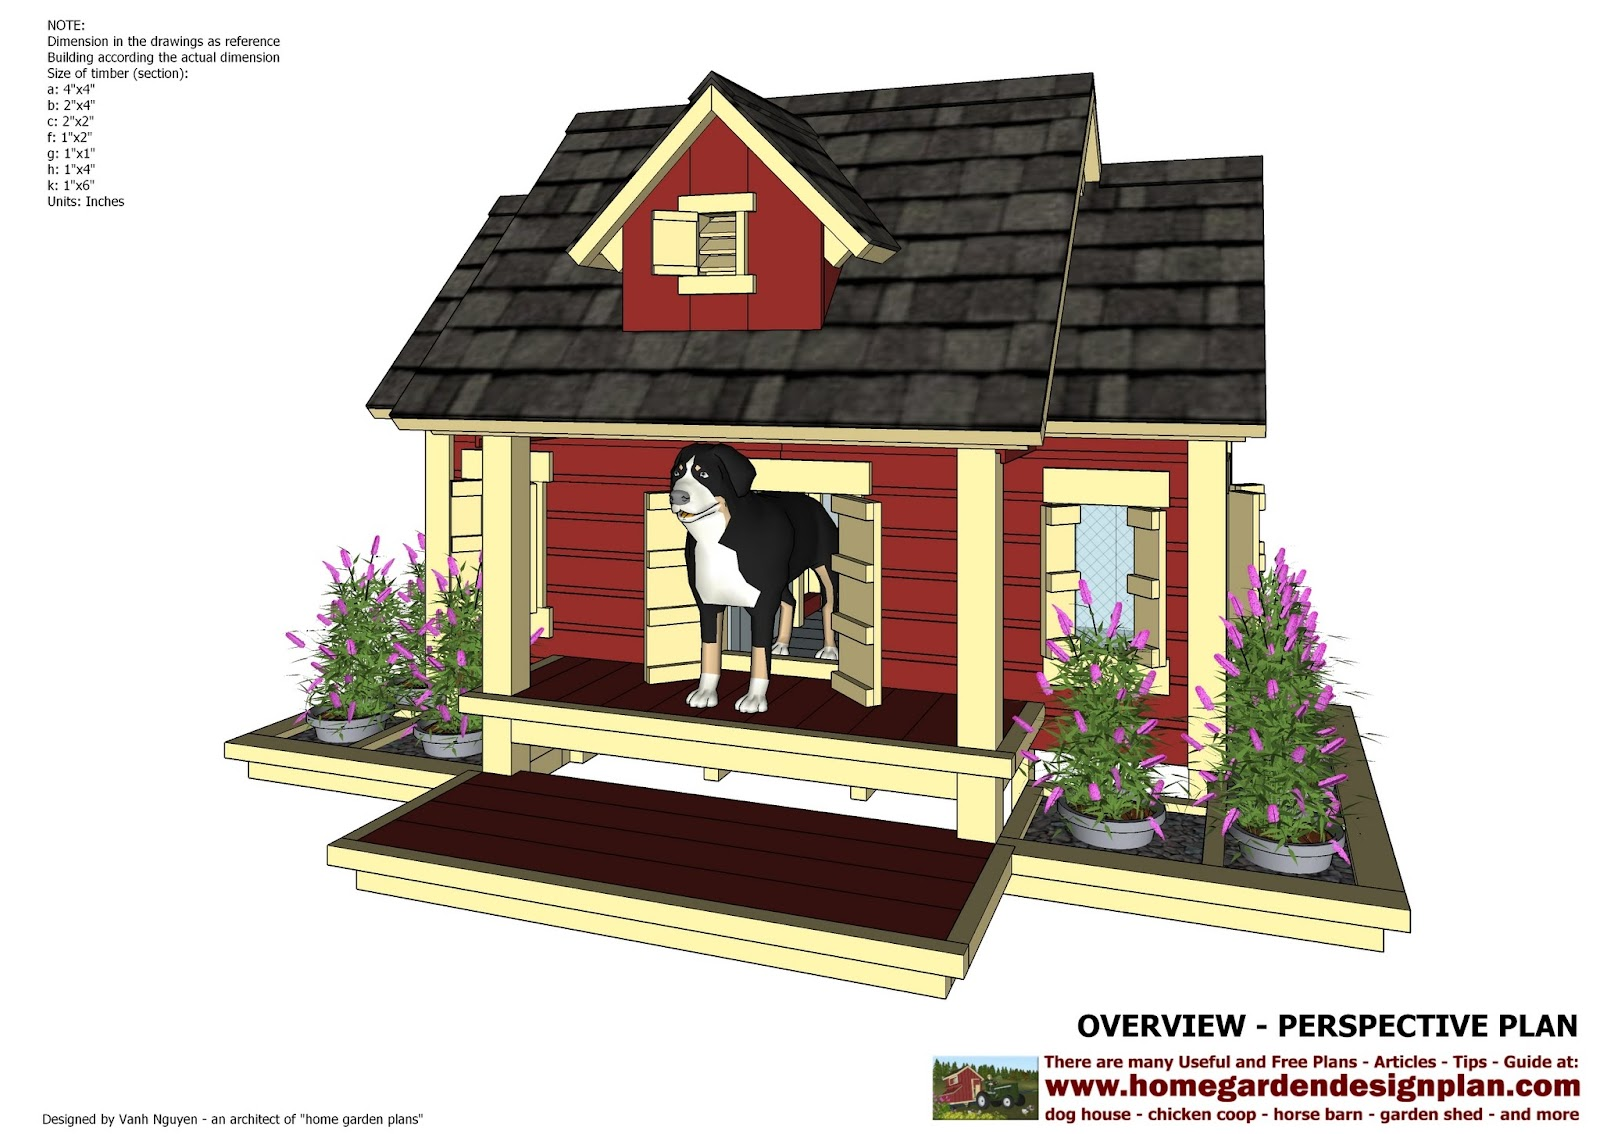 Home garden plans dh301 insulated dog house plans for Insulated dog house plans pdf